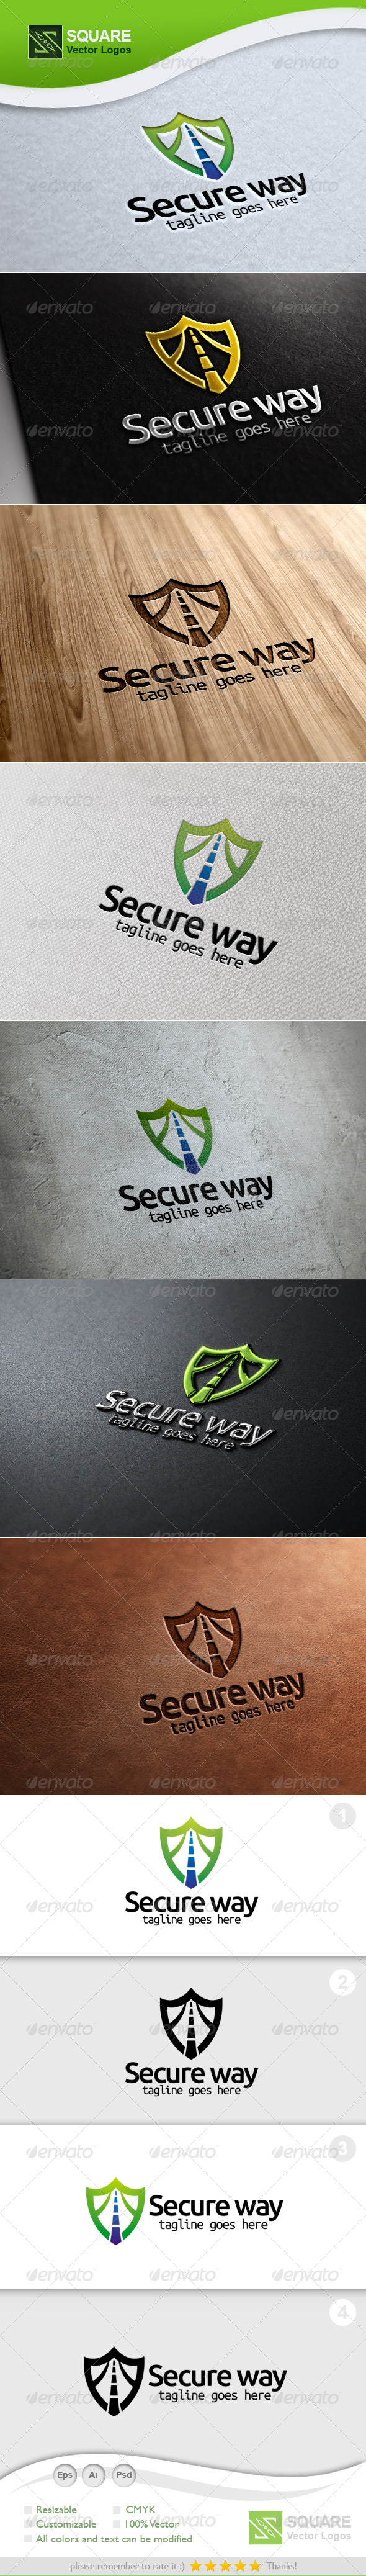 Secure, Way Vector Logo Template - Symbols Logo Templates